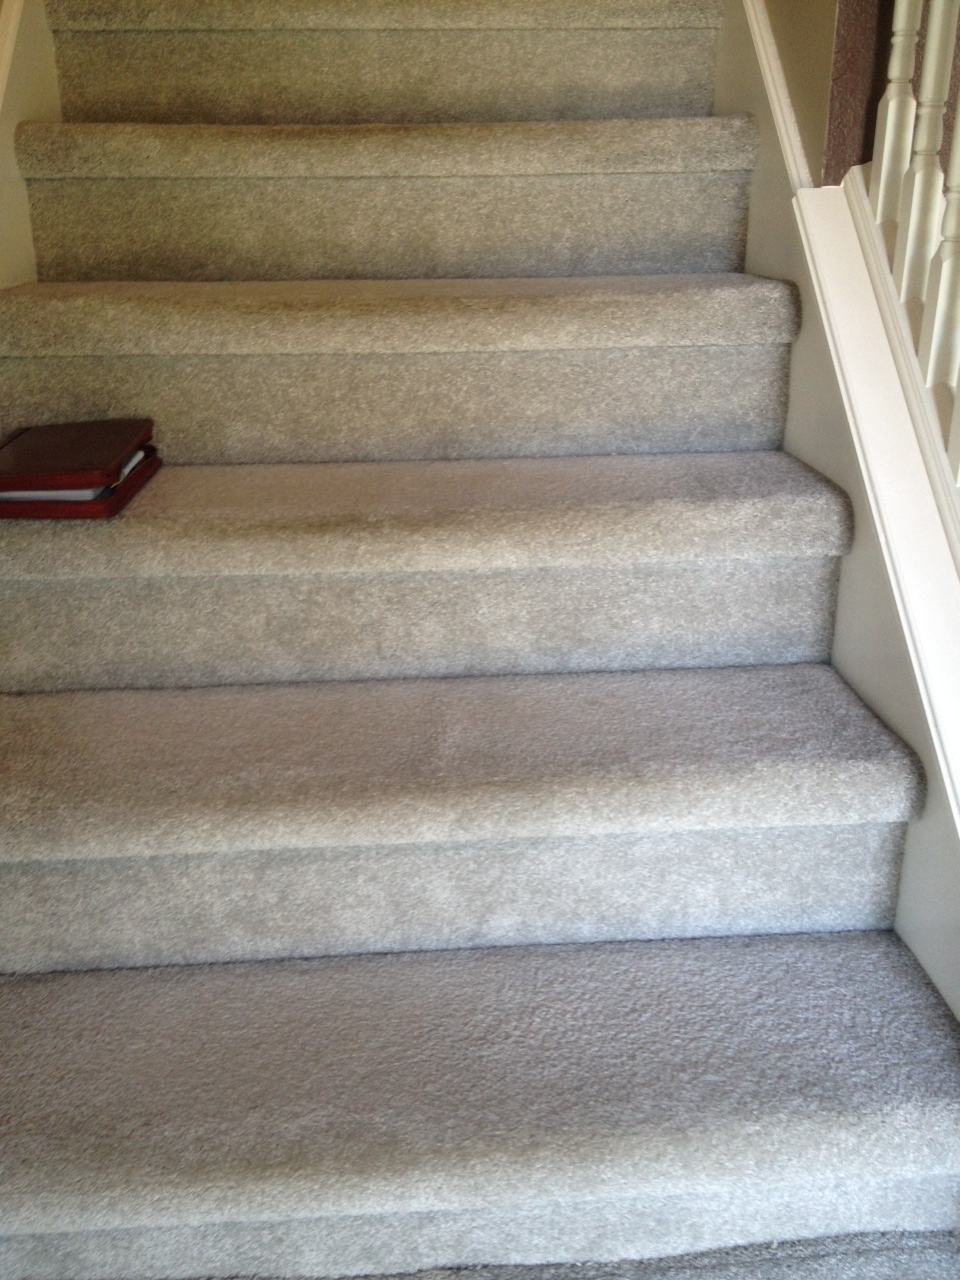 Carpet On Stairs Not Installed Correctly Indianapolis